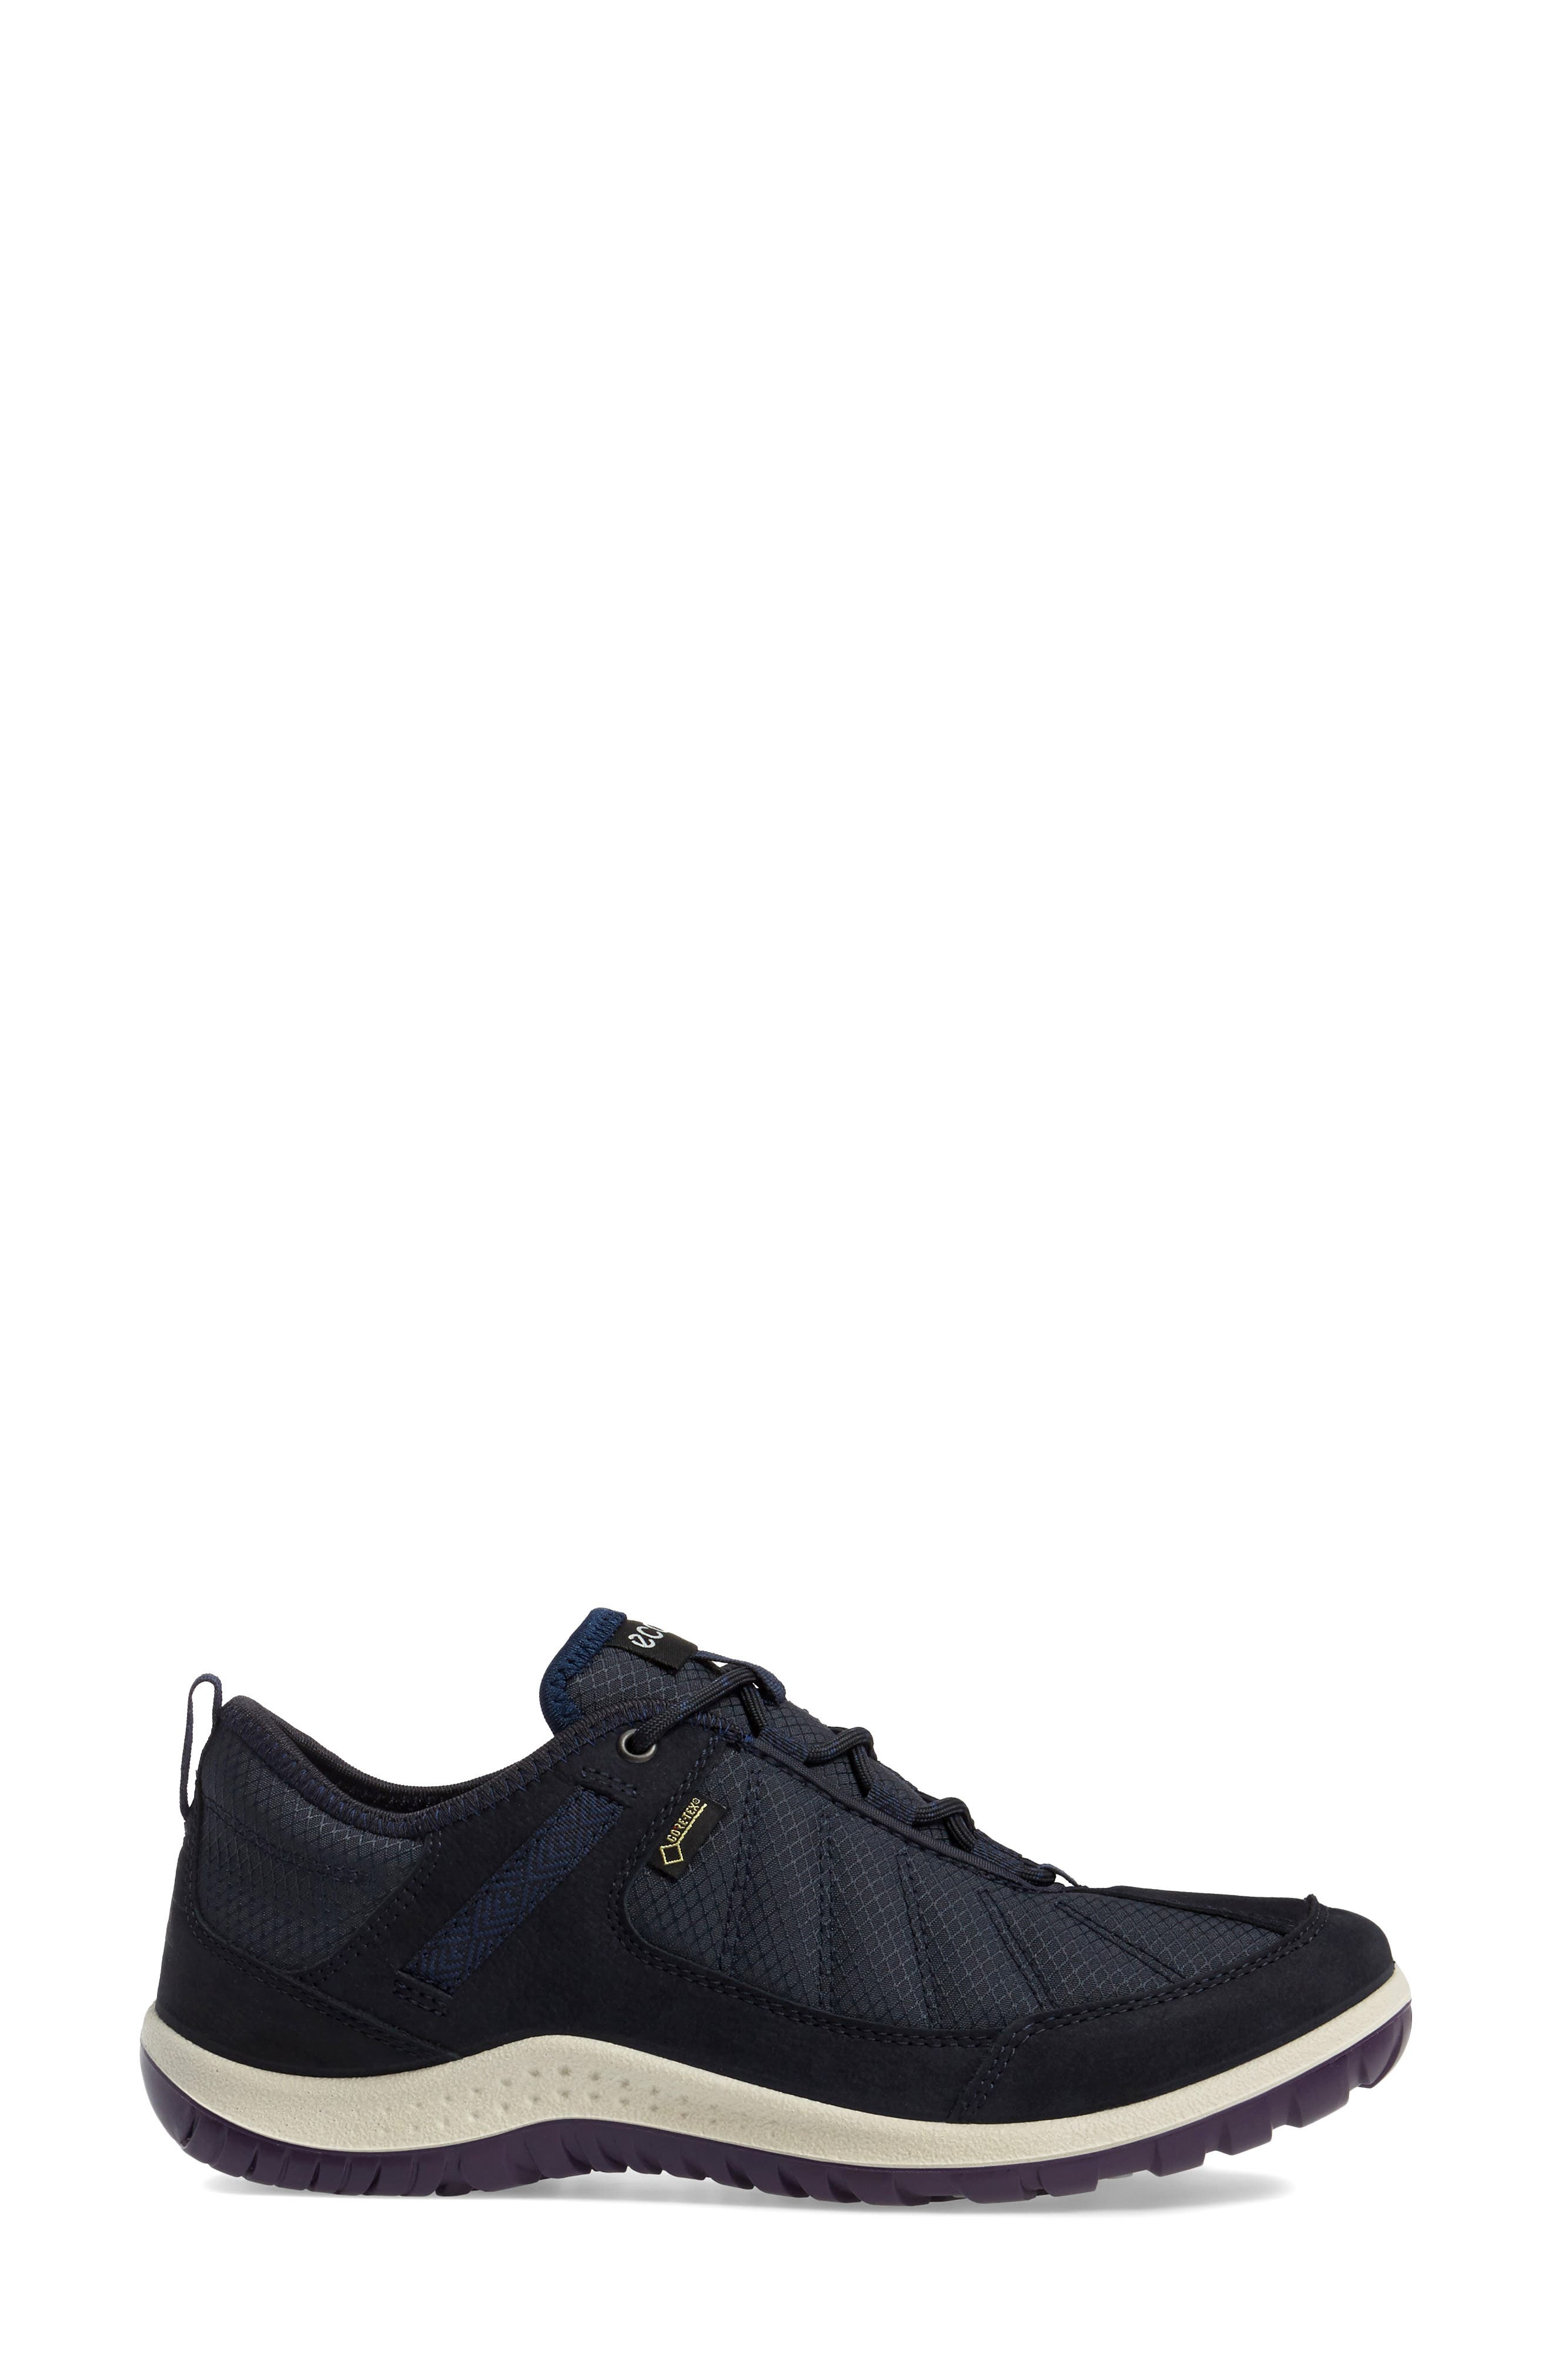 Aspina GTX Waterproof Sneaker,                             Alternate thumbnail 3, color,                             Navy Leather